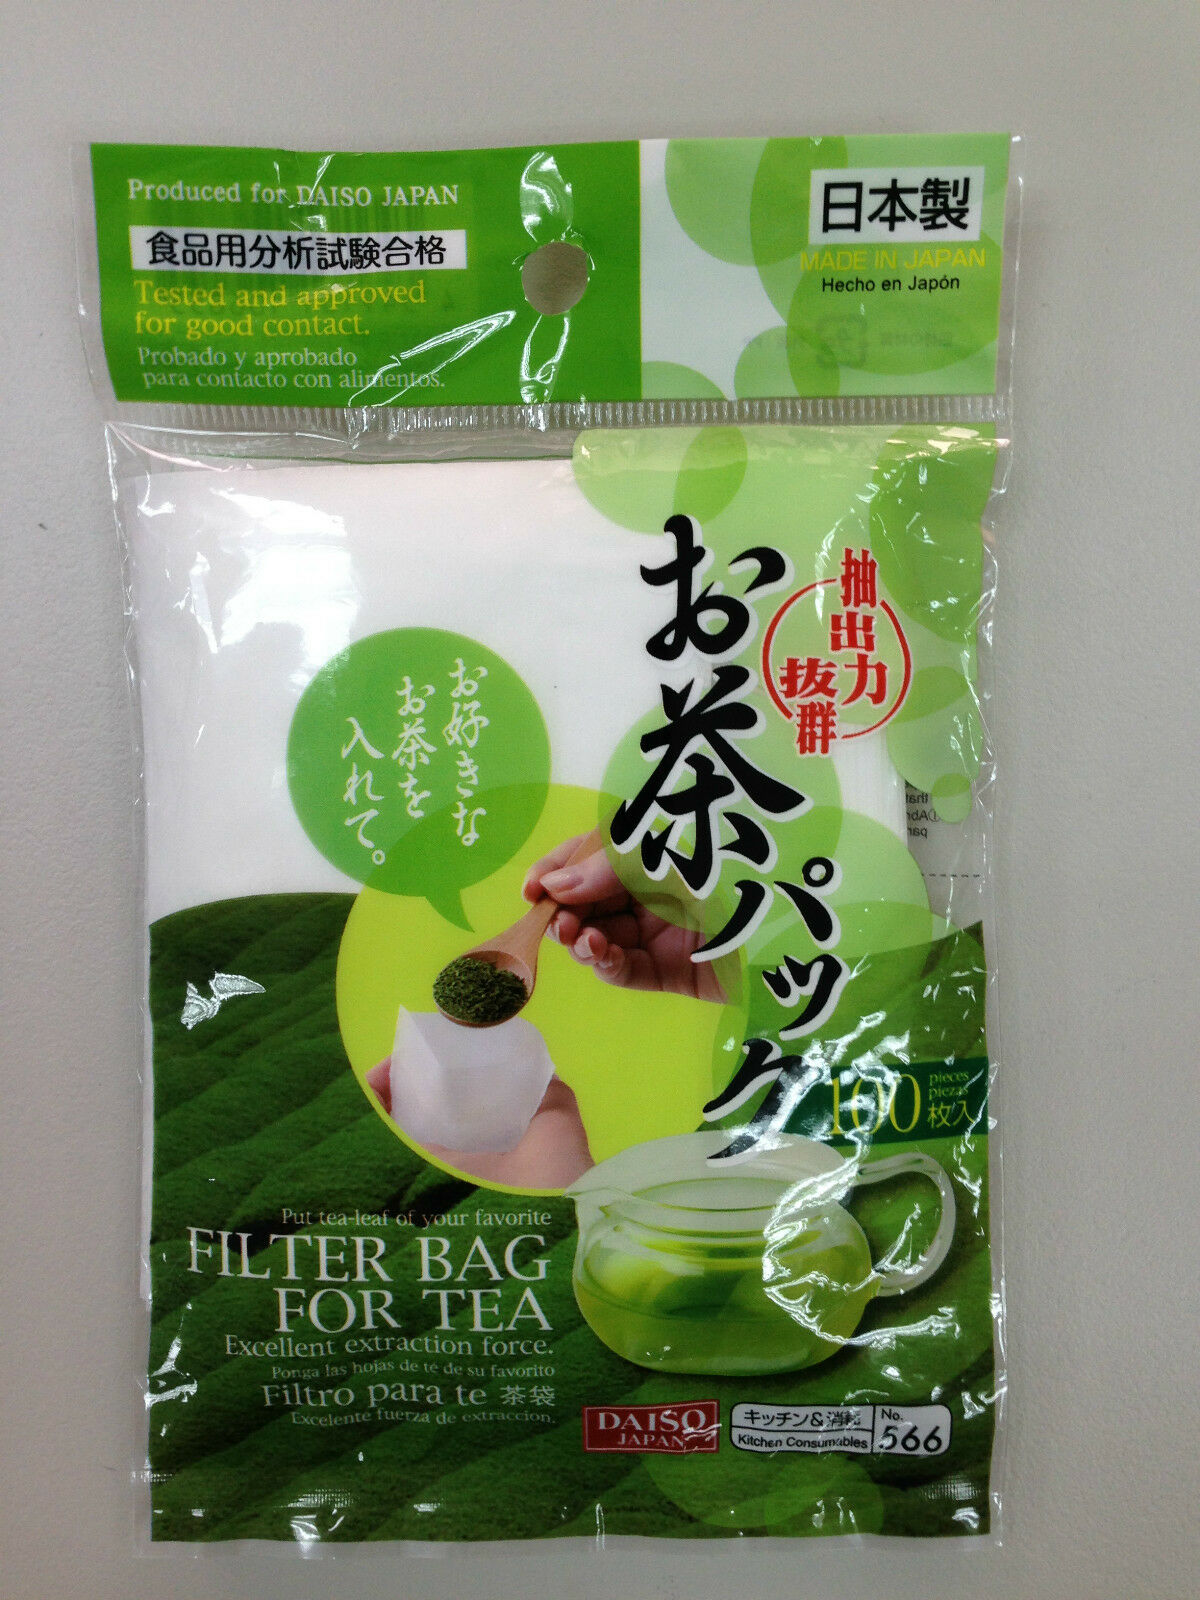 DAISO JAPAN MADE IN JAPAN FILTER BAG FOR TEA 100 PCS x 8 PACK F//S